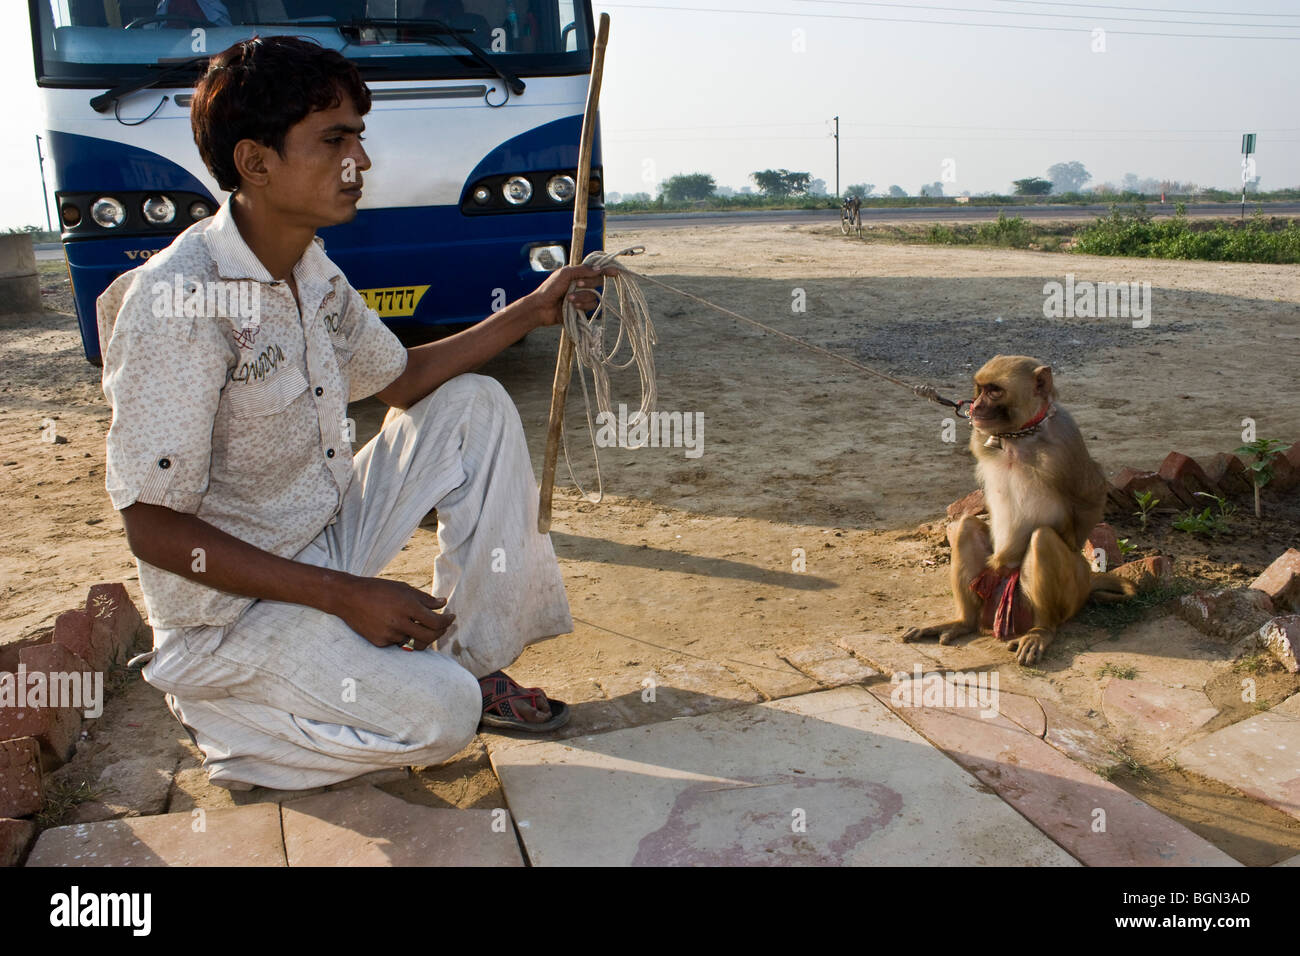 trainer with a monkey waiting to attract tourists - Stock Image